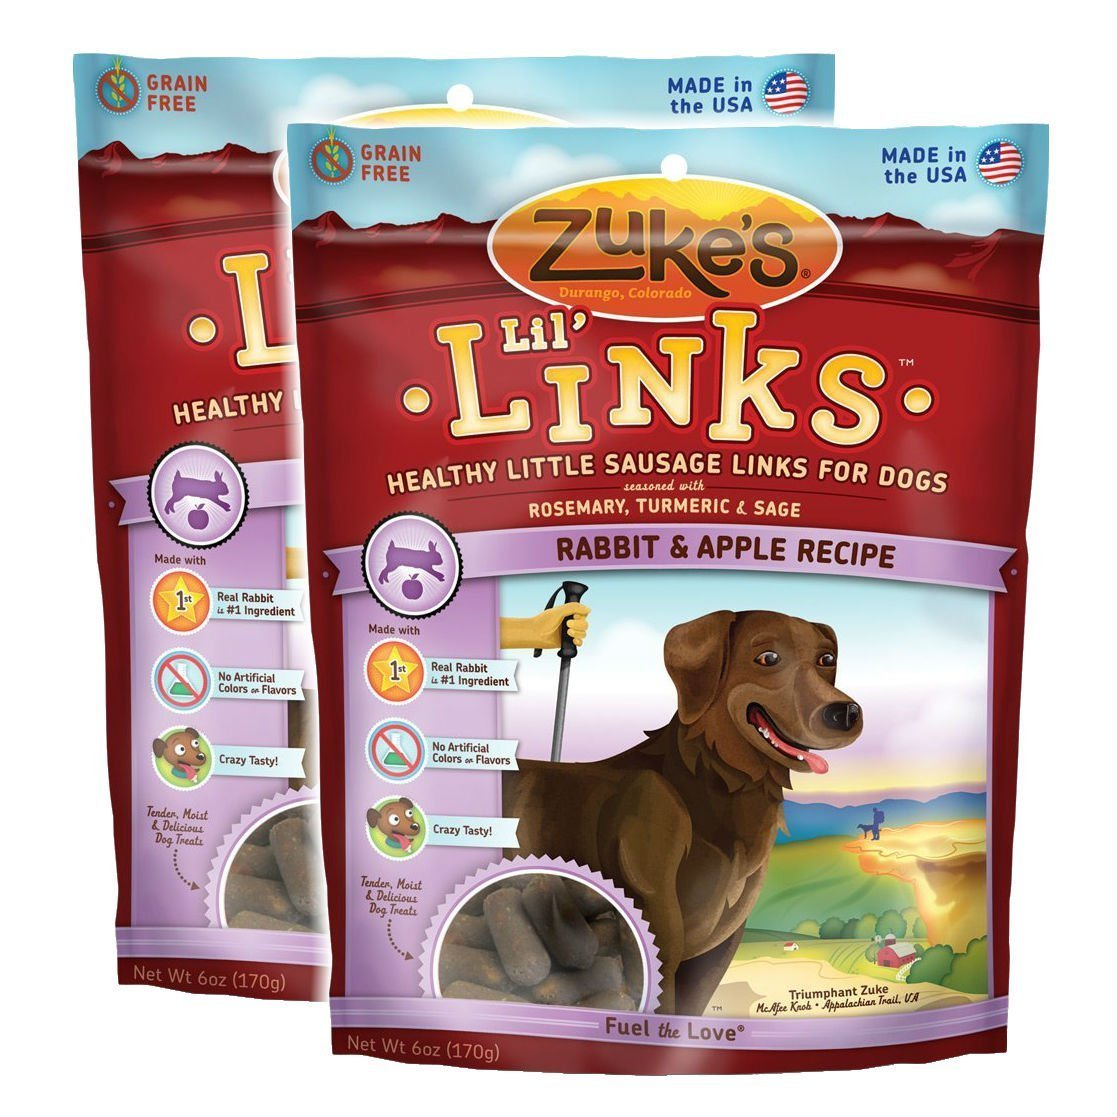 Zuke s Lil Links Healthy Little Sausage Links for Dogs, Rabbit, Pack of 2